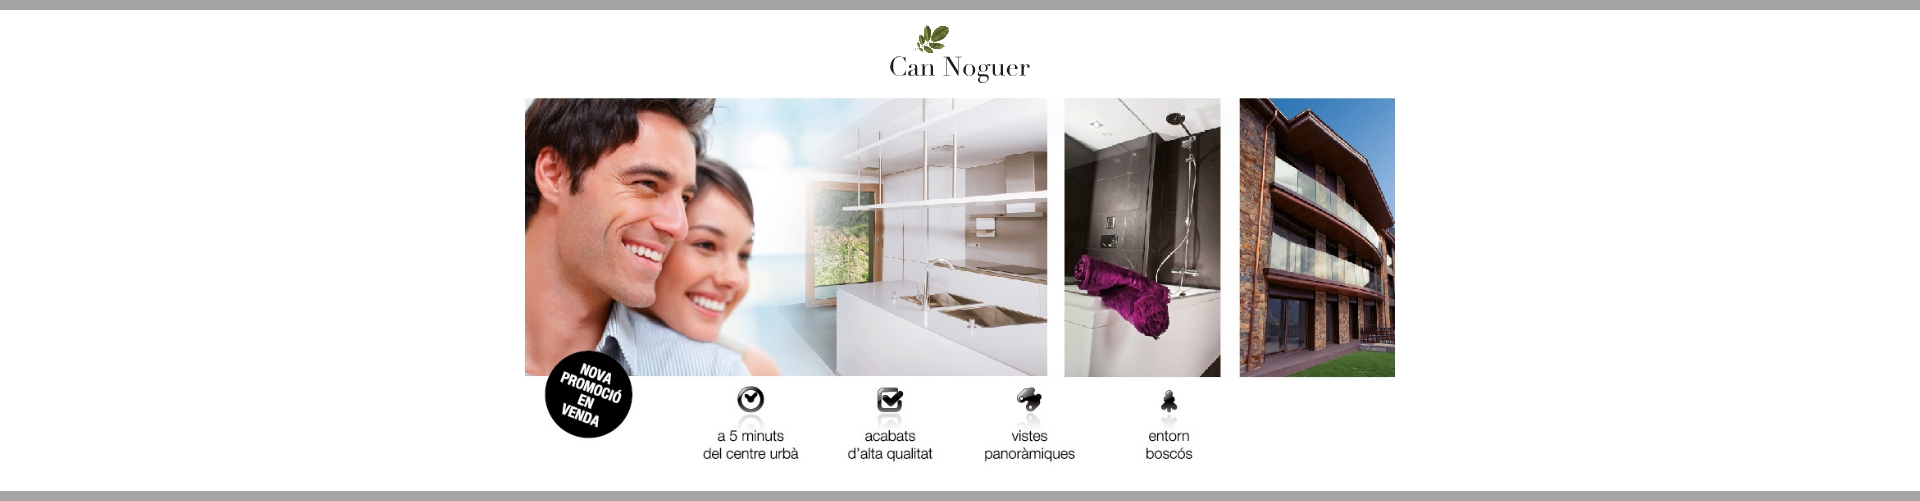 img_promo_can_noguer_3